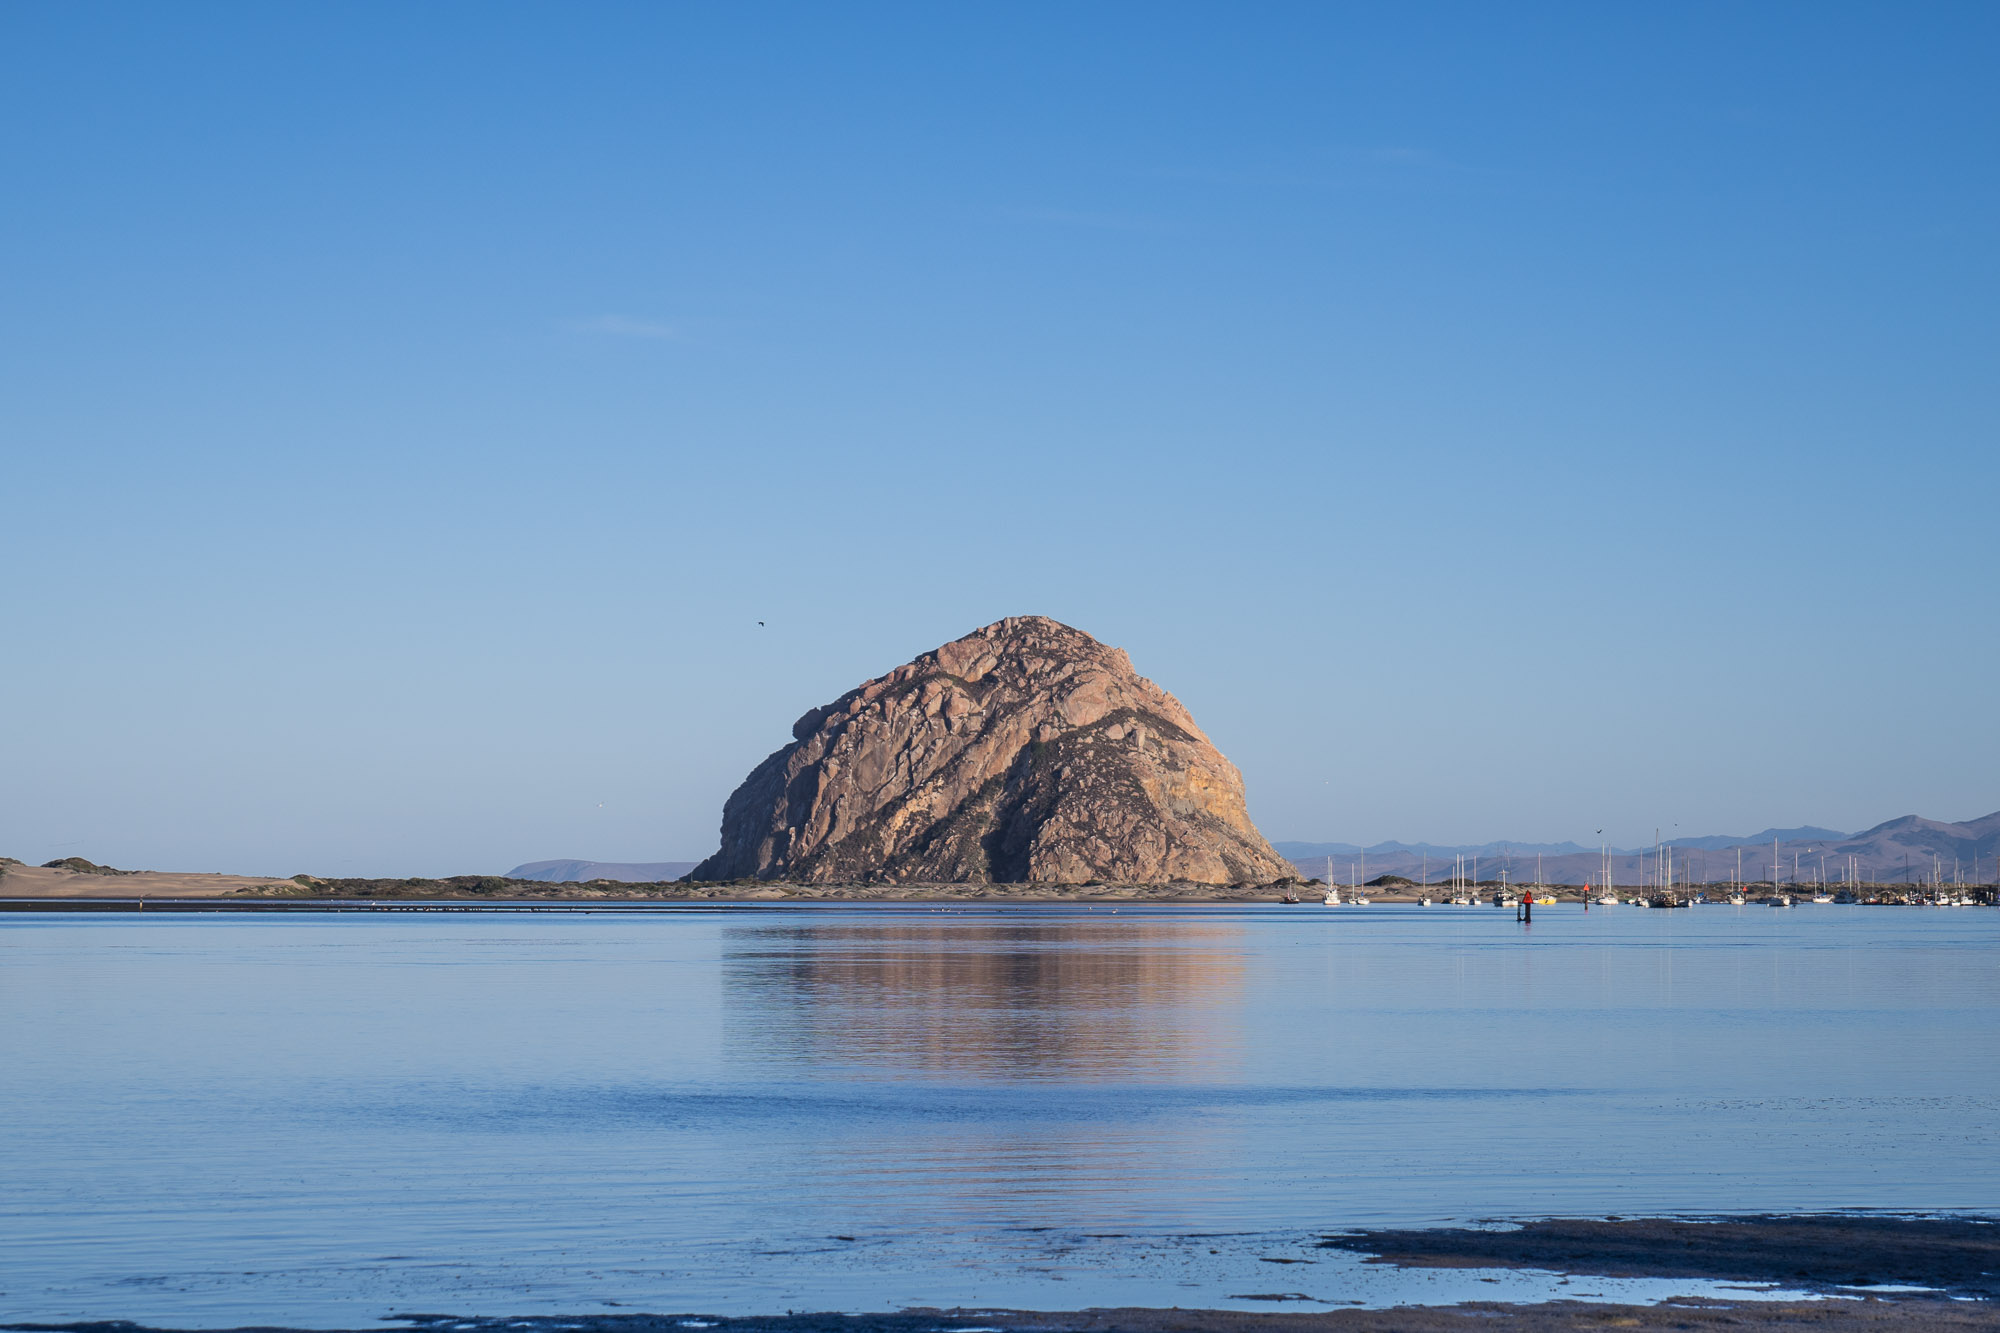 Morro Rock at Morro Bay in San Luis Obispo, California.